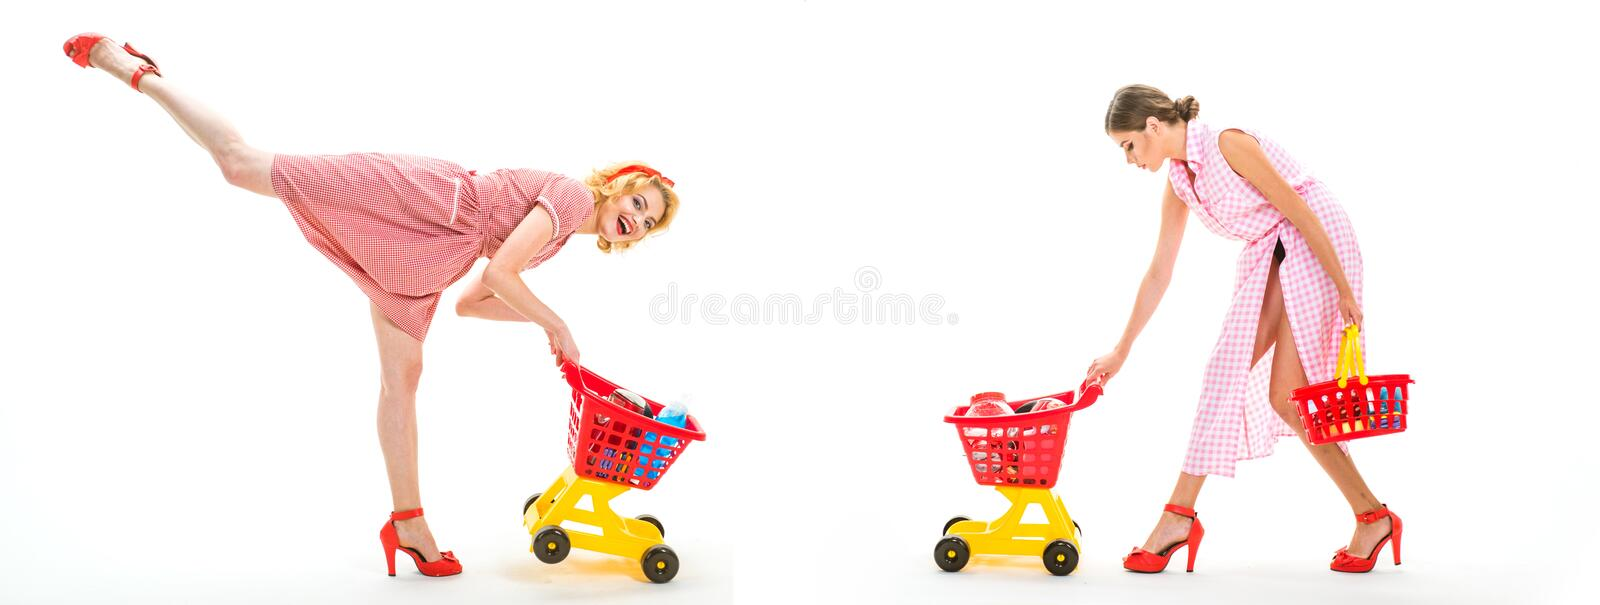 Retro women go shopping with full cart. vintage housewife women going to make payment in supermarket. happy shopping. Girls with full cart. savings on purchases royalty free stock photography